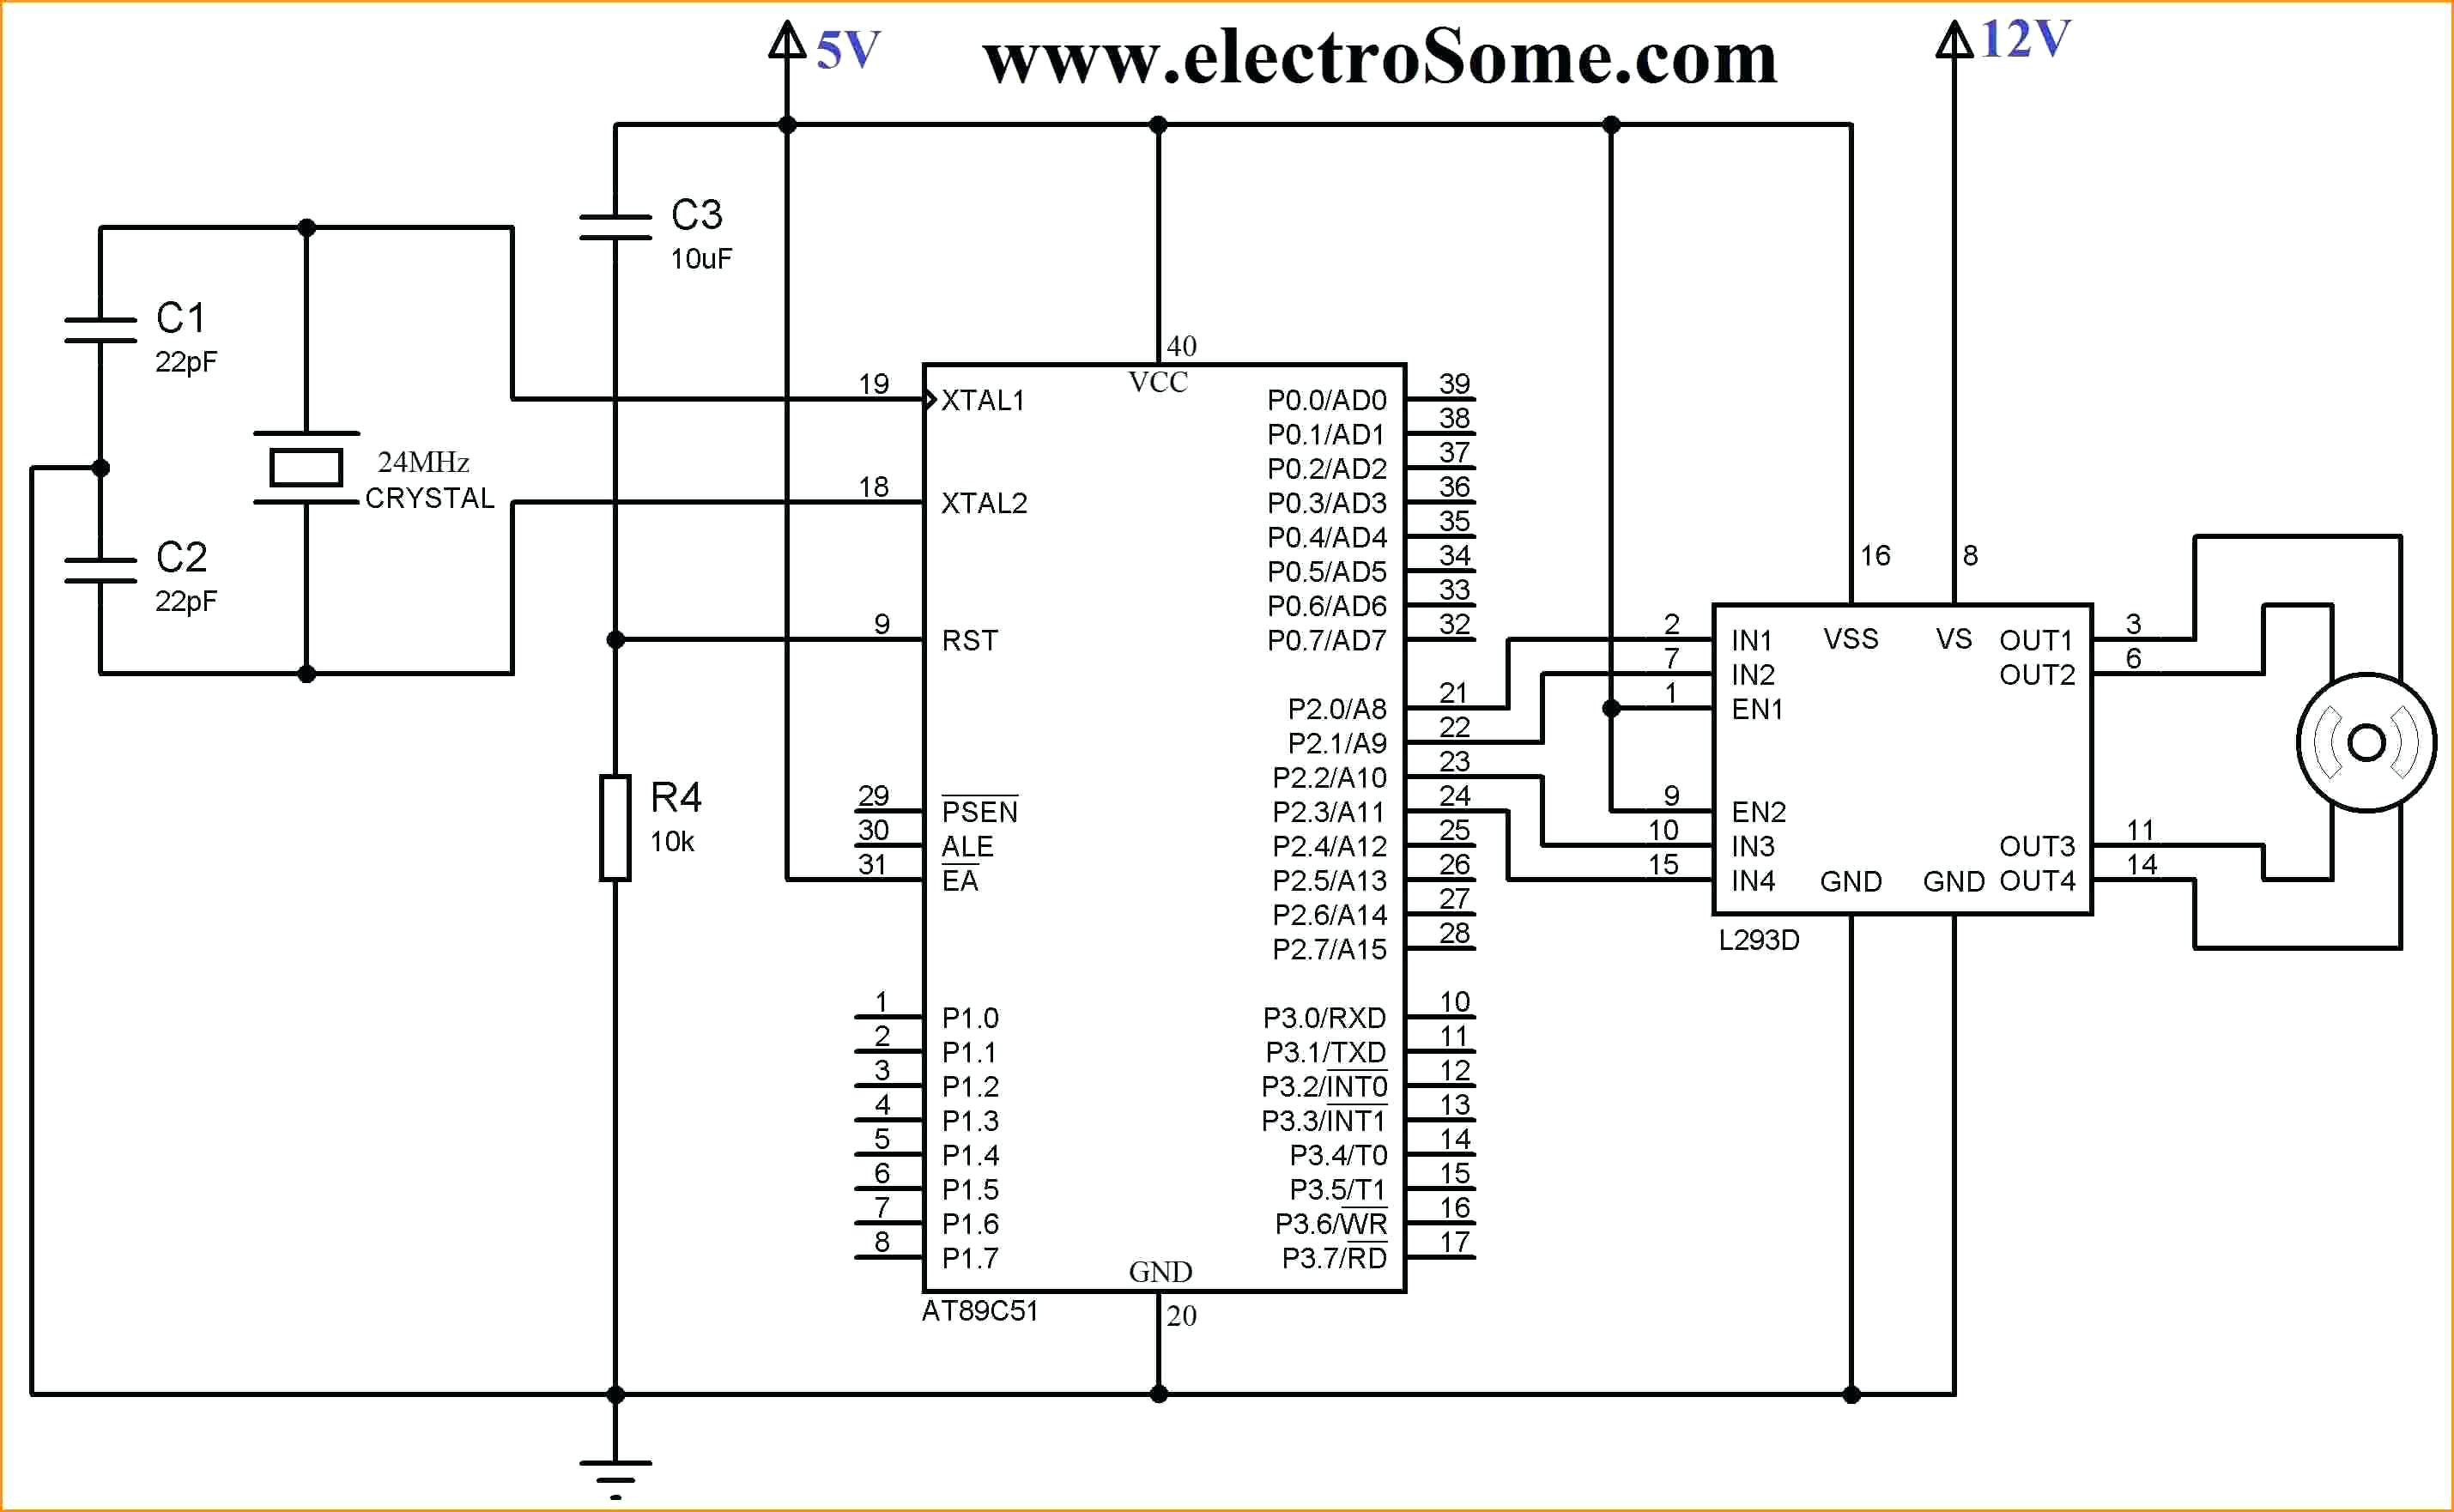 taco sr502 4 wiring diagram Download-Taco Sr502 4 Wiring Diagram New Zone Valve Wiring Diagram Honeywell 4-k